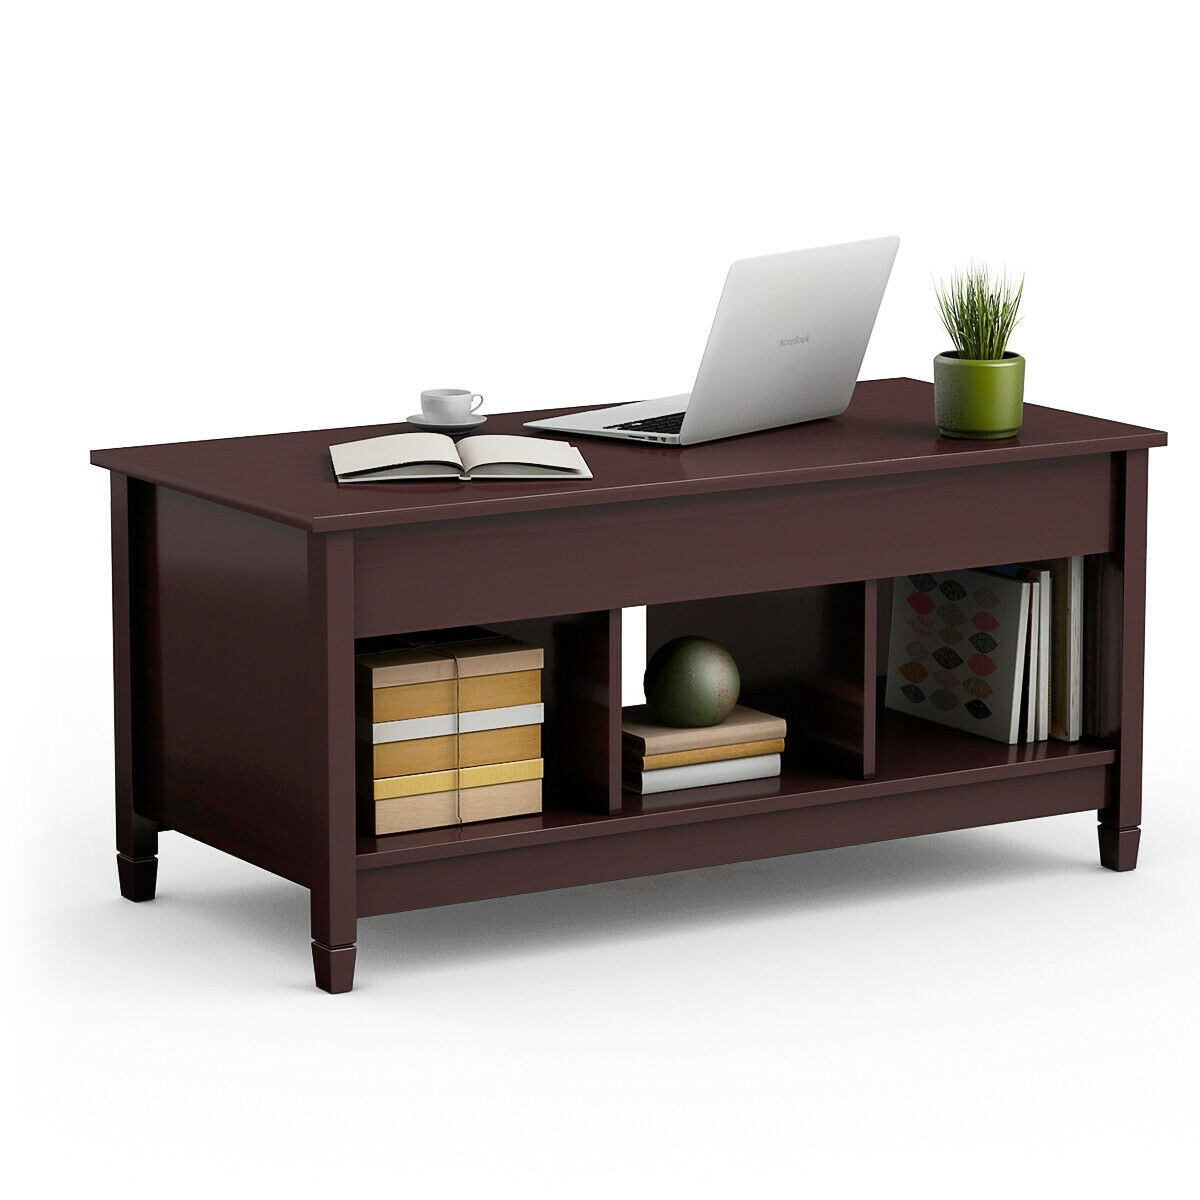 Lift Top Coffee Table.Costway Lift Top Coffee Table W Hidden Compartment And Storage Shelves Modern Furniture As Pic